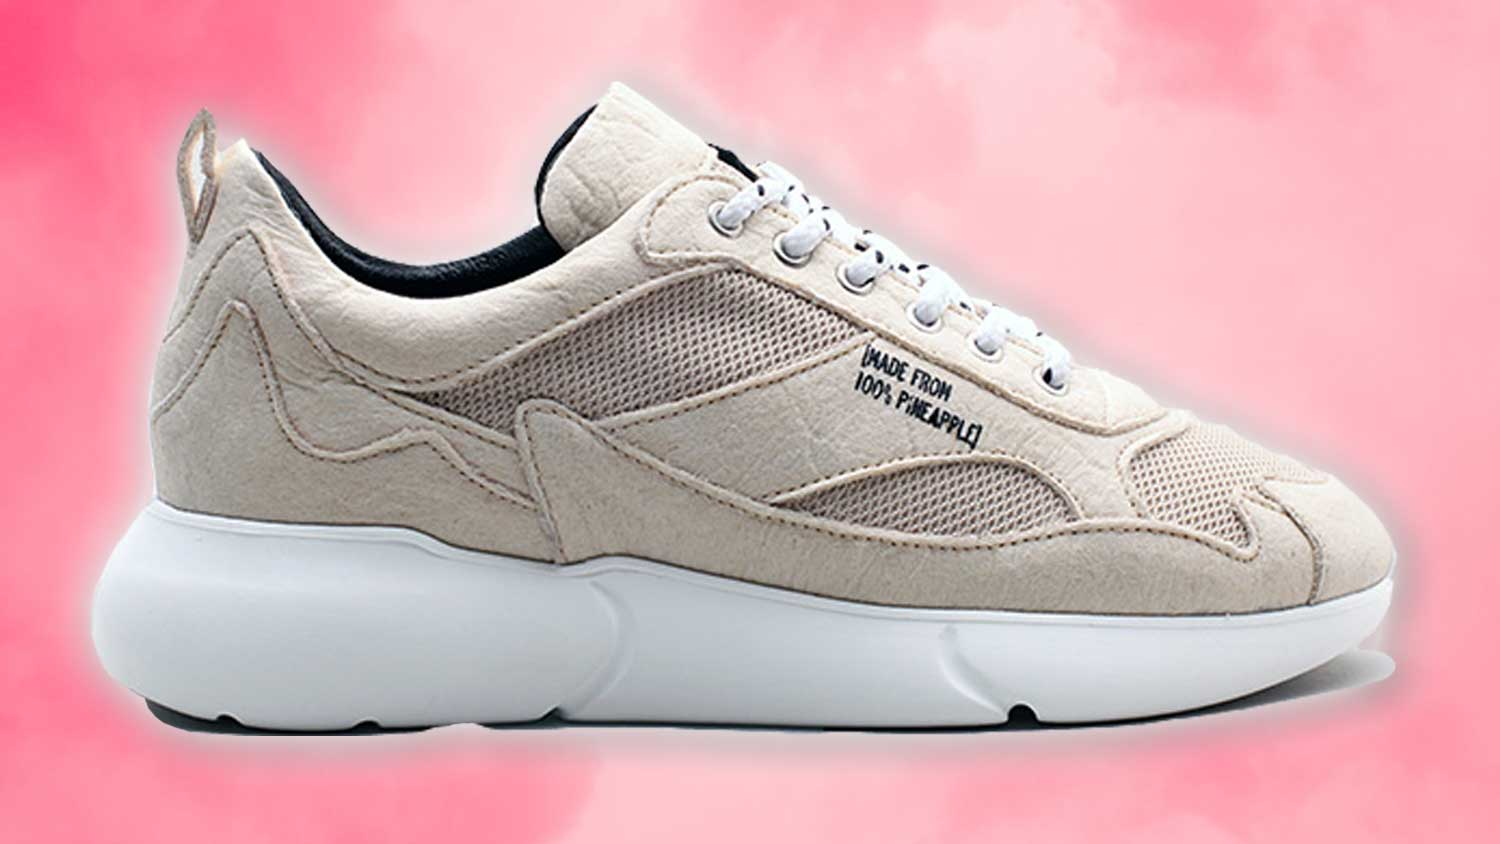 These Vegan Leather Sneakers are Made From Pineapples